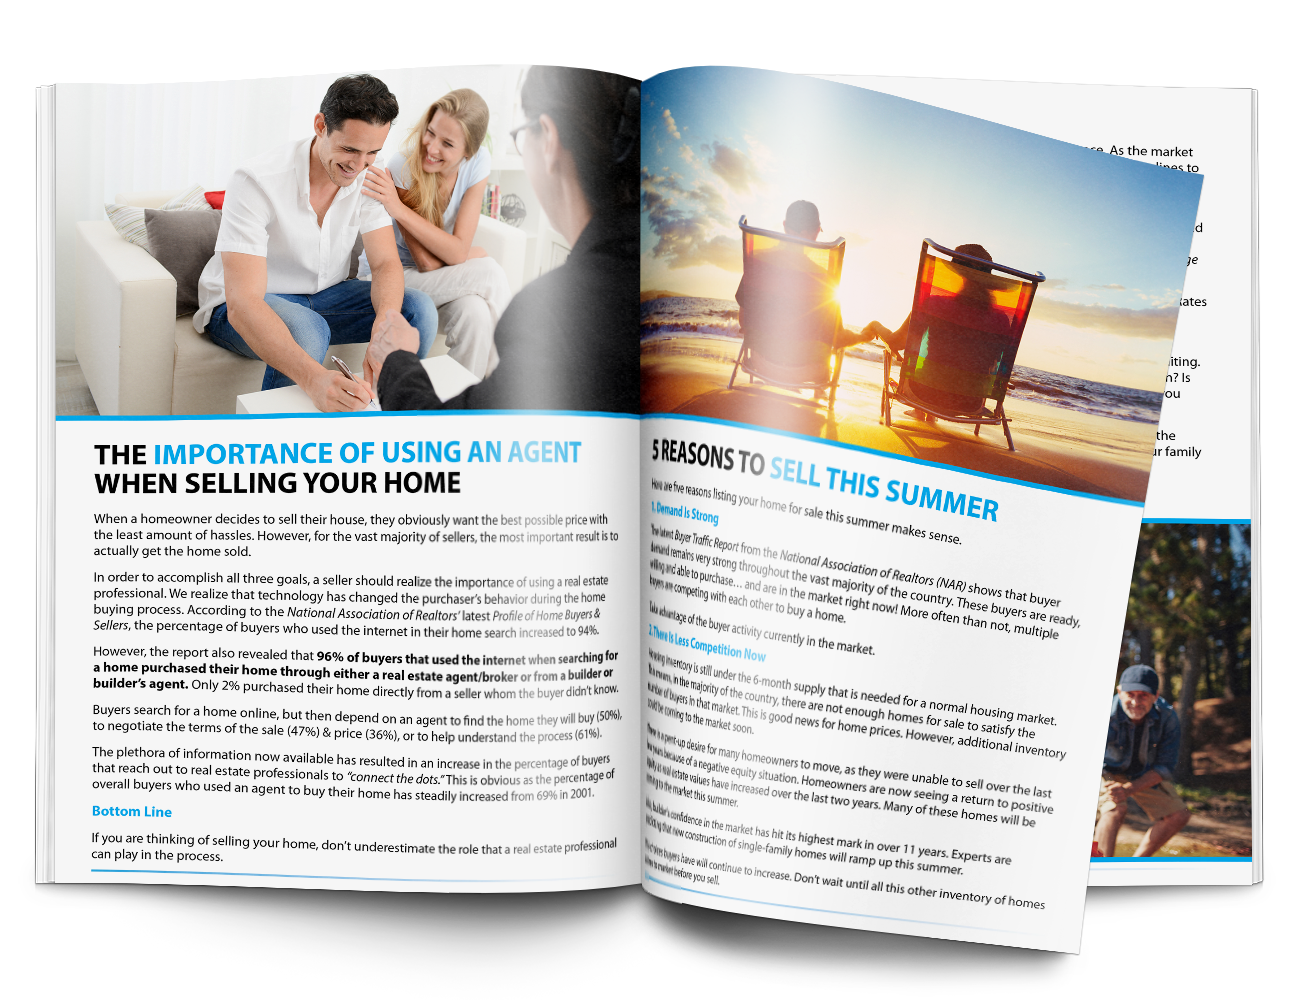 Home Seller Guide Summer 2017: Things To Consider Before Selling Your Home